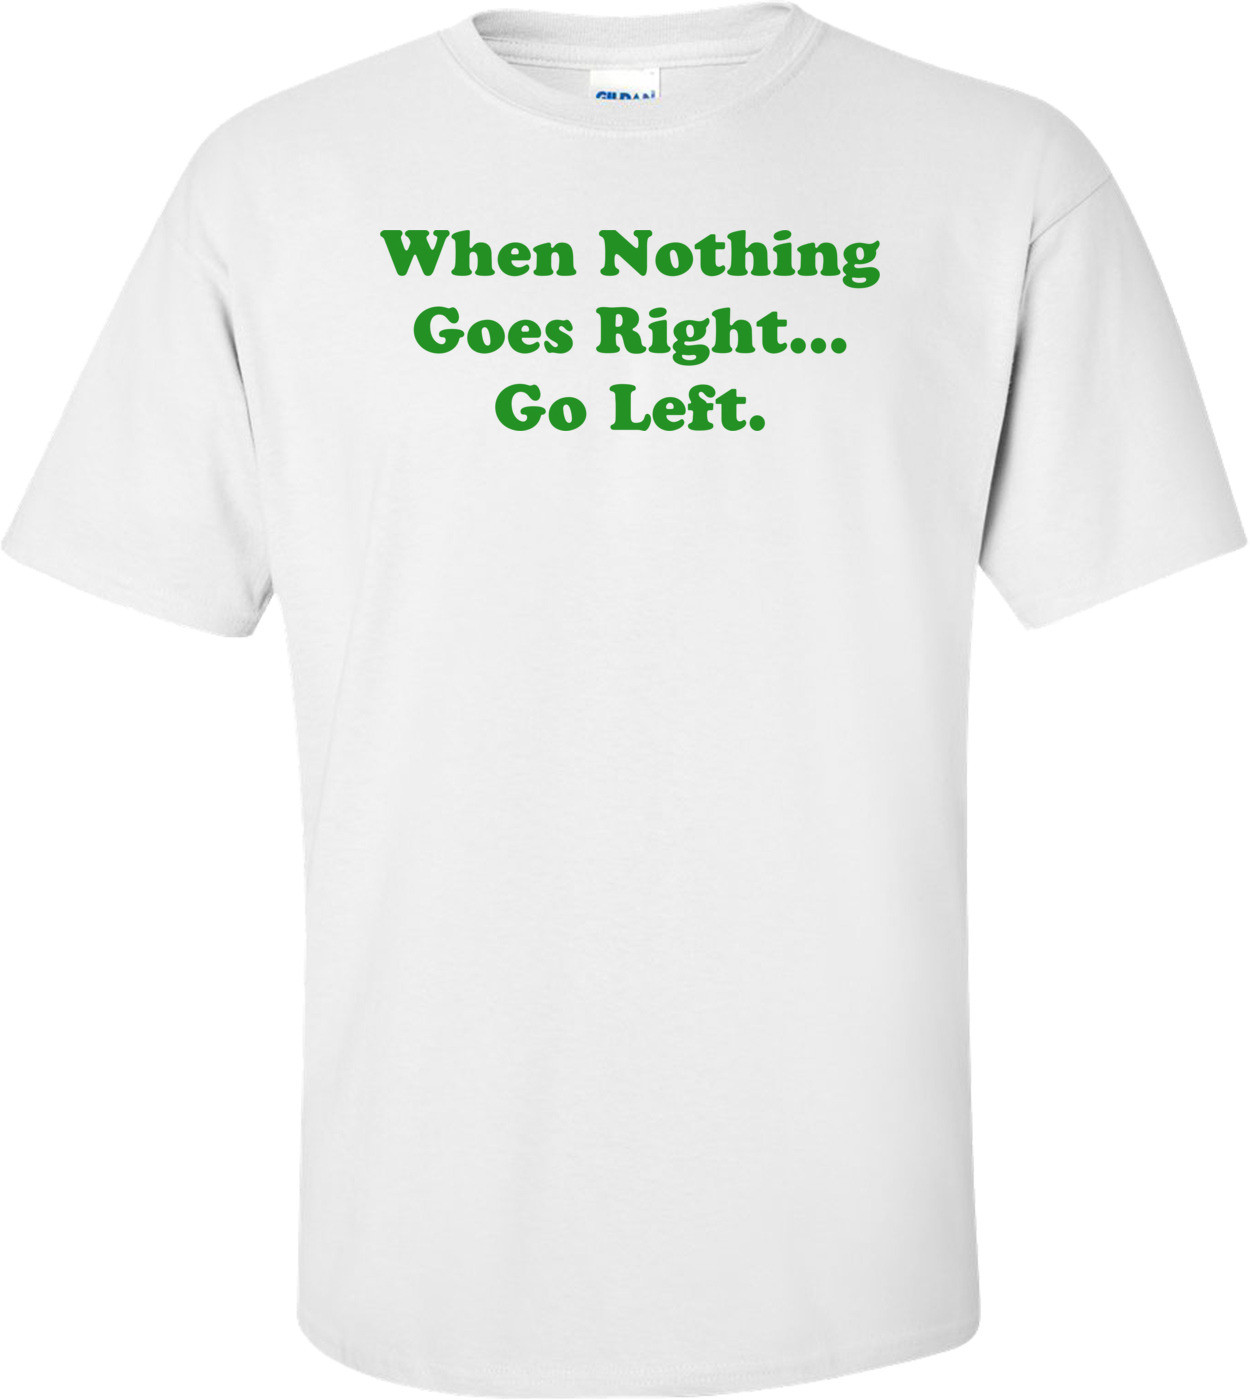 When Nothing Goes Right... Go Left. Shirt